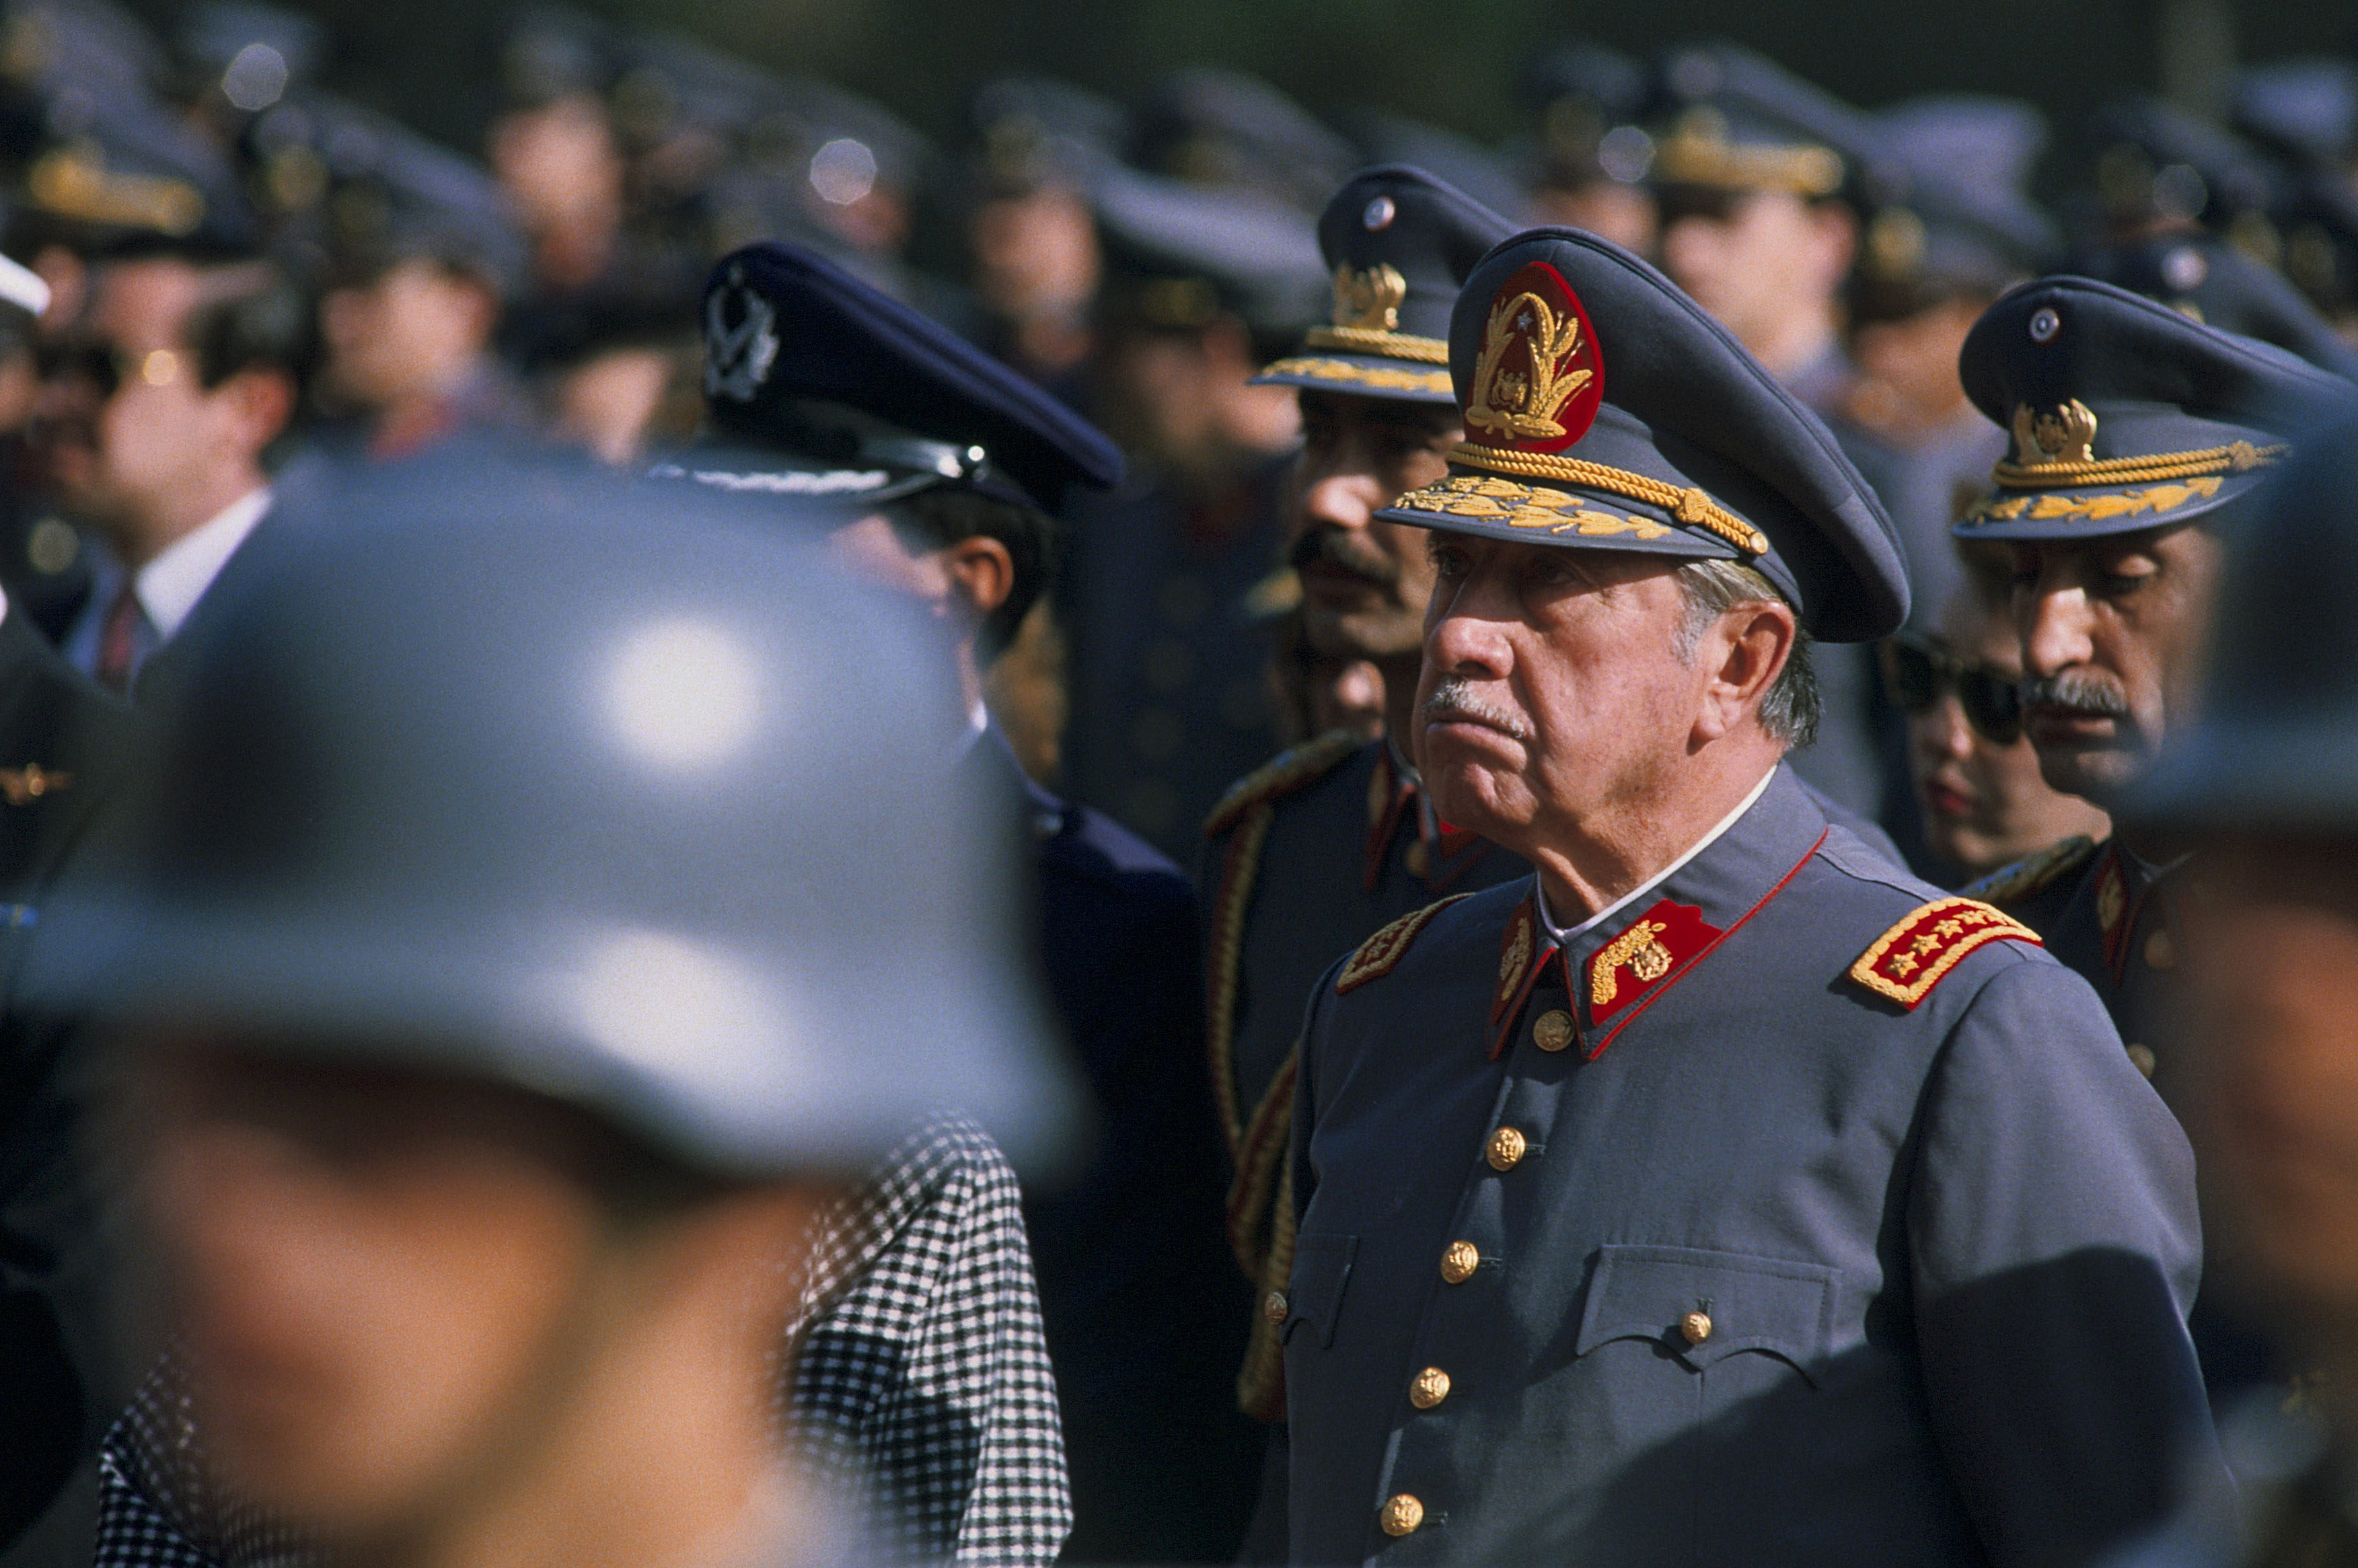 CHILE - SEPTEMBER 10:  Burial of 4 guards killed in failed assassination attempt on Augusto Pinochet On September 10th, 1986 In Santiago,Chile  (Photo by Alexis DUCLOS/Gamma-Rapho via Getty Images)